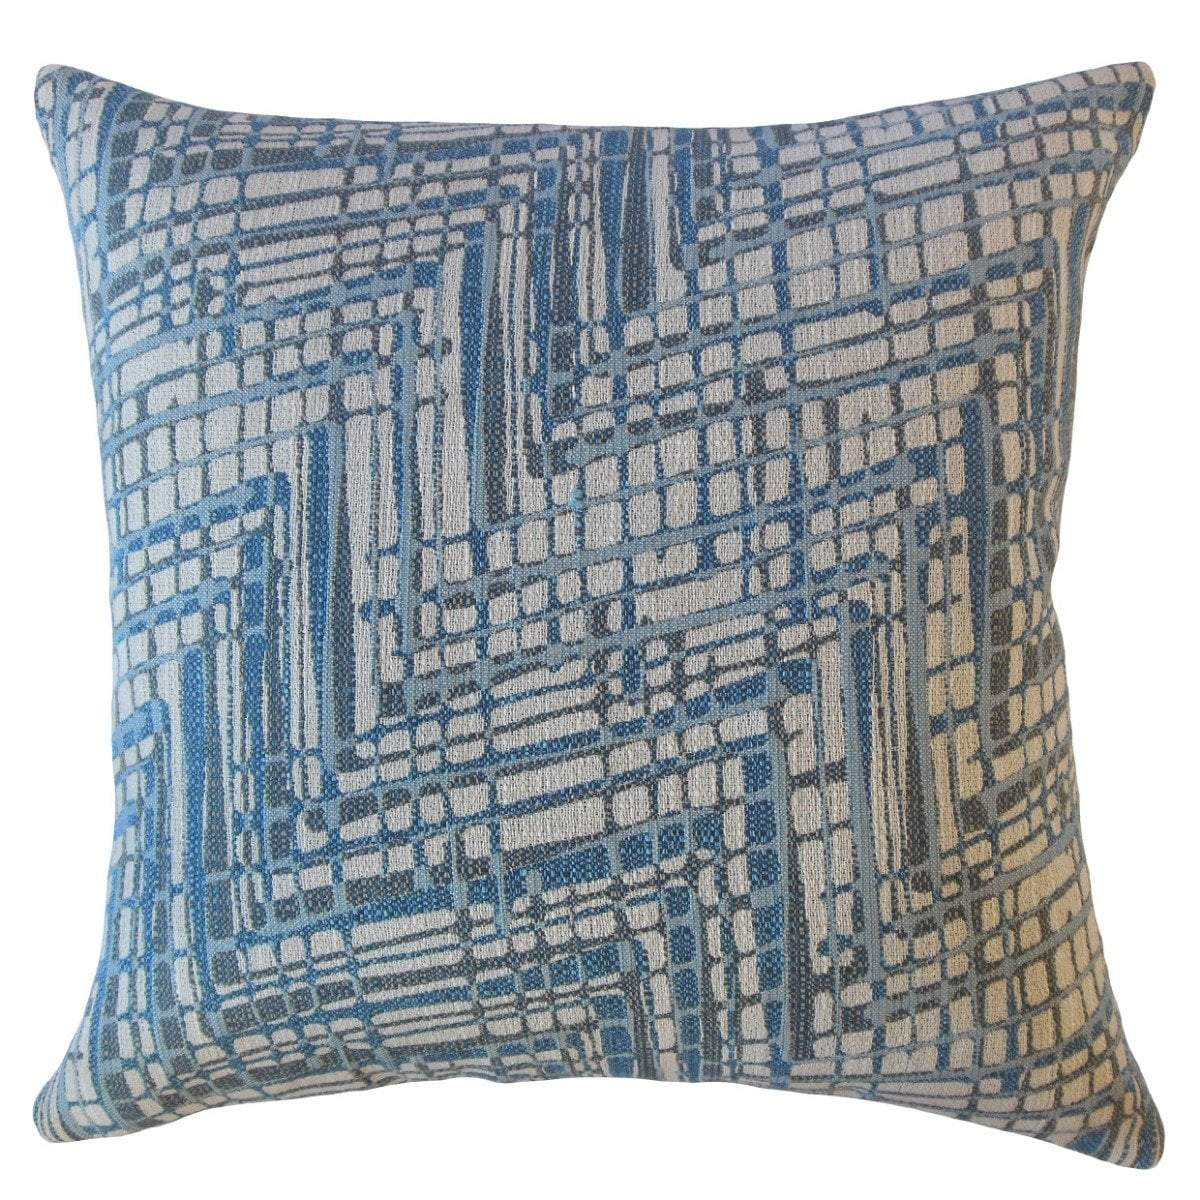 Boone Throw Pillow Cover